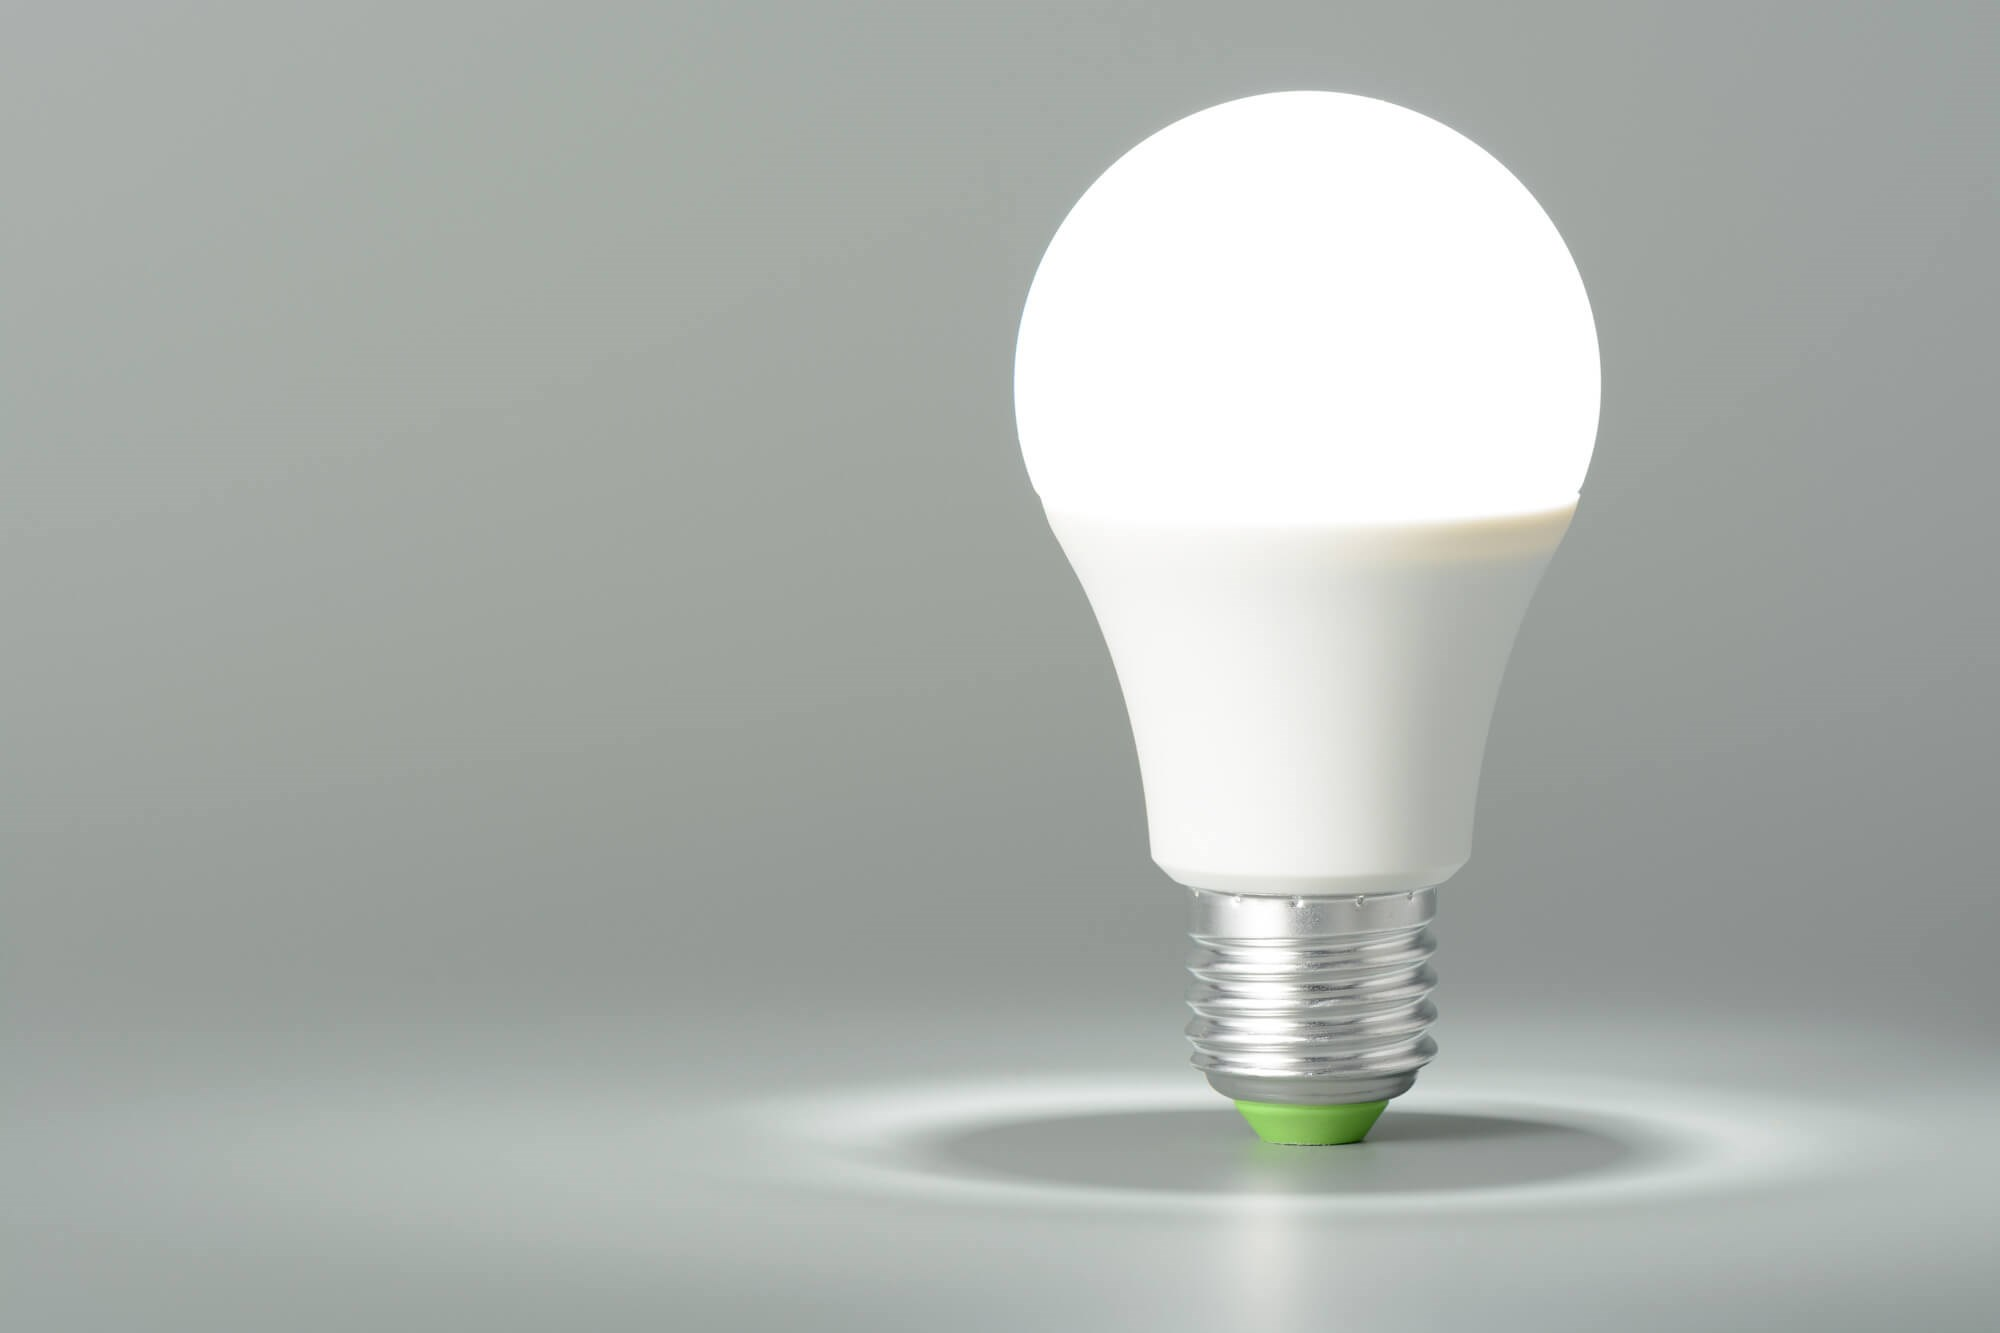 The Top 5 Benefits of LED Lights